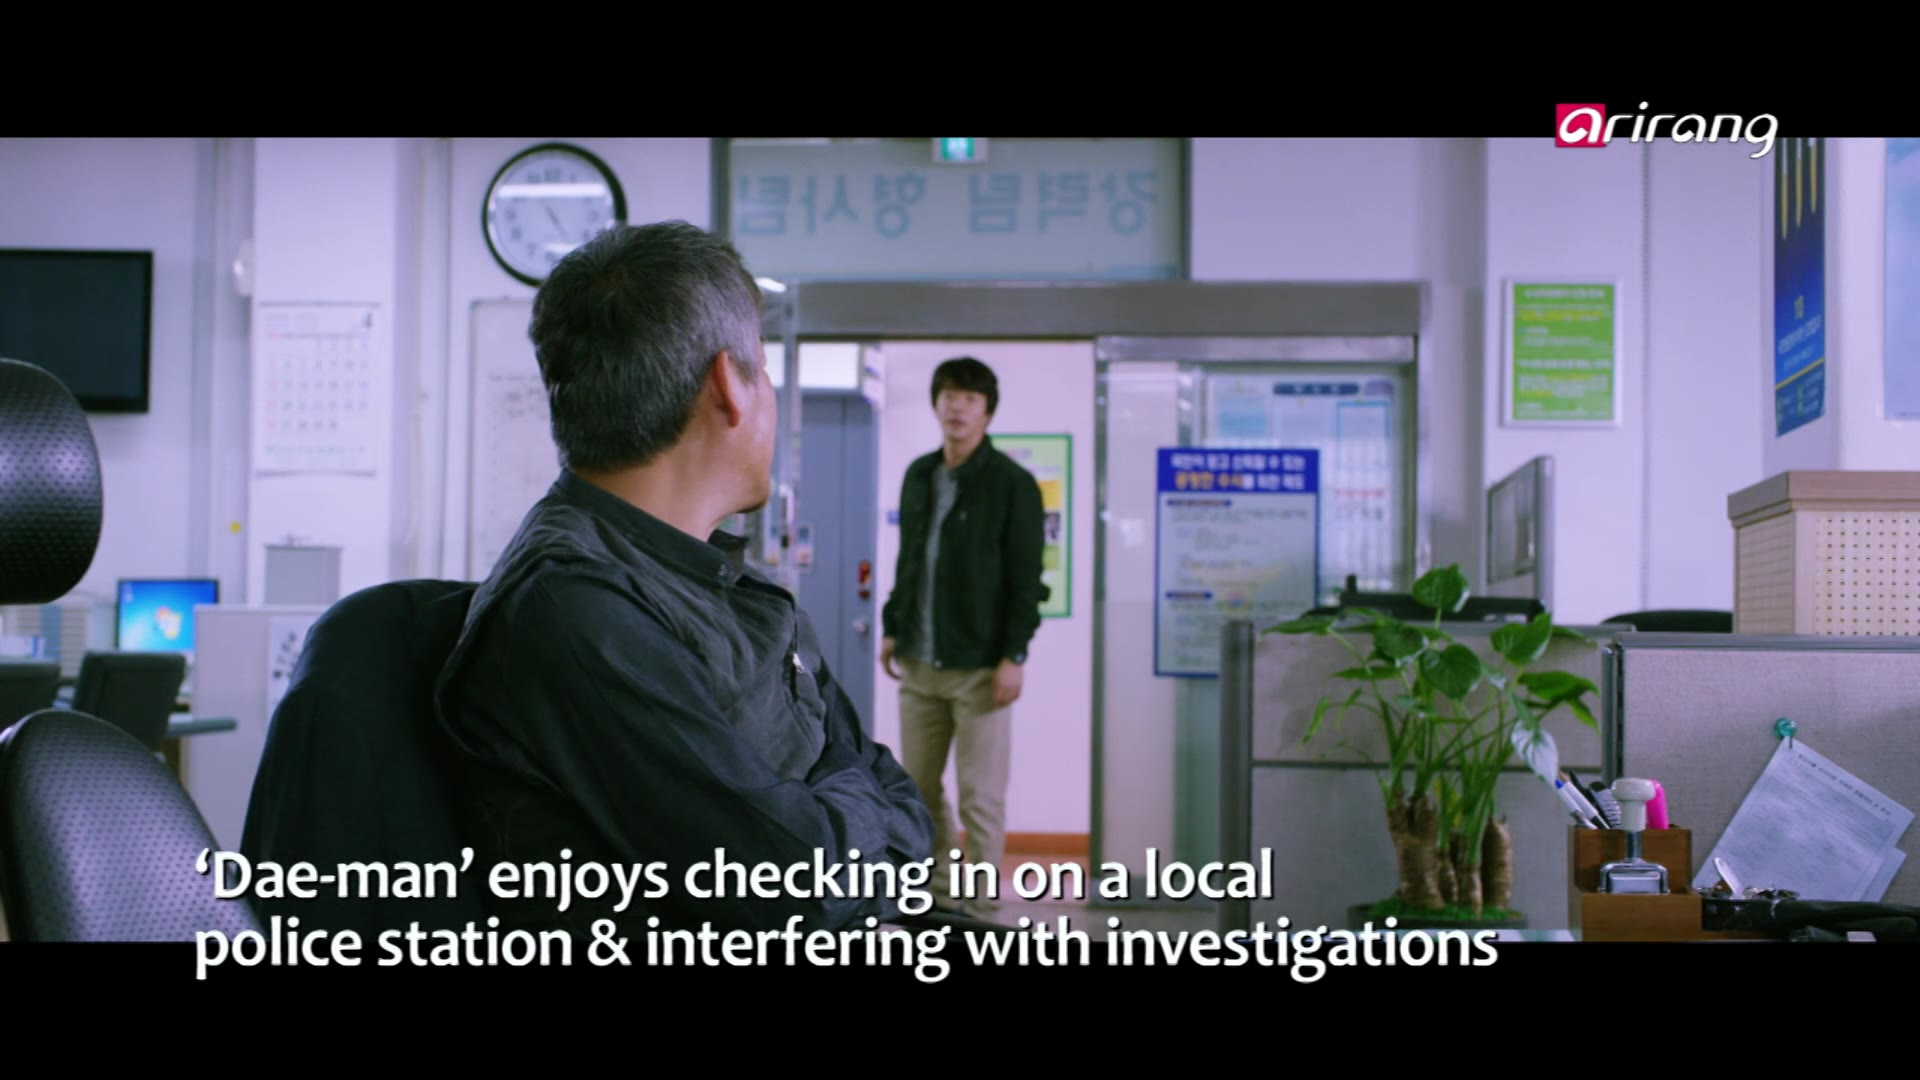 'The Accidental Detective' - Film Digest